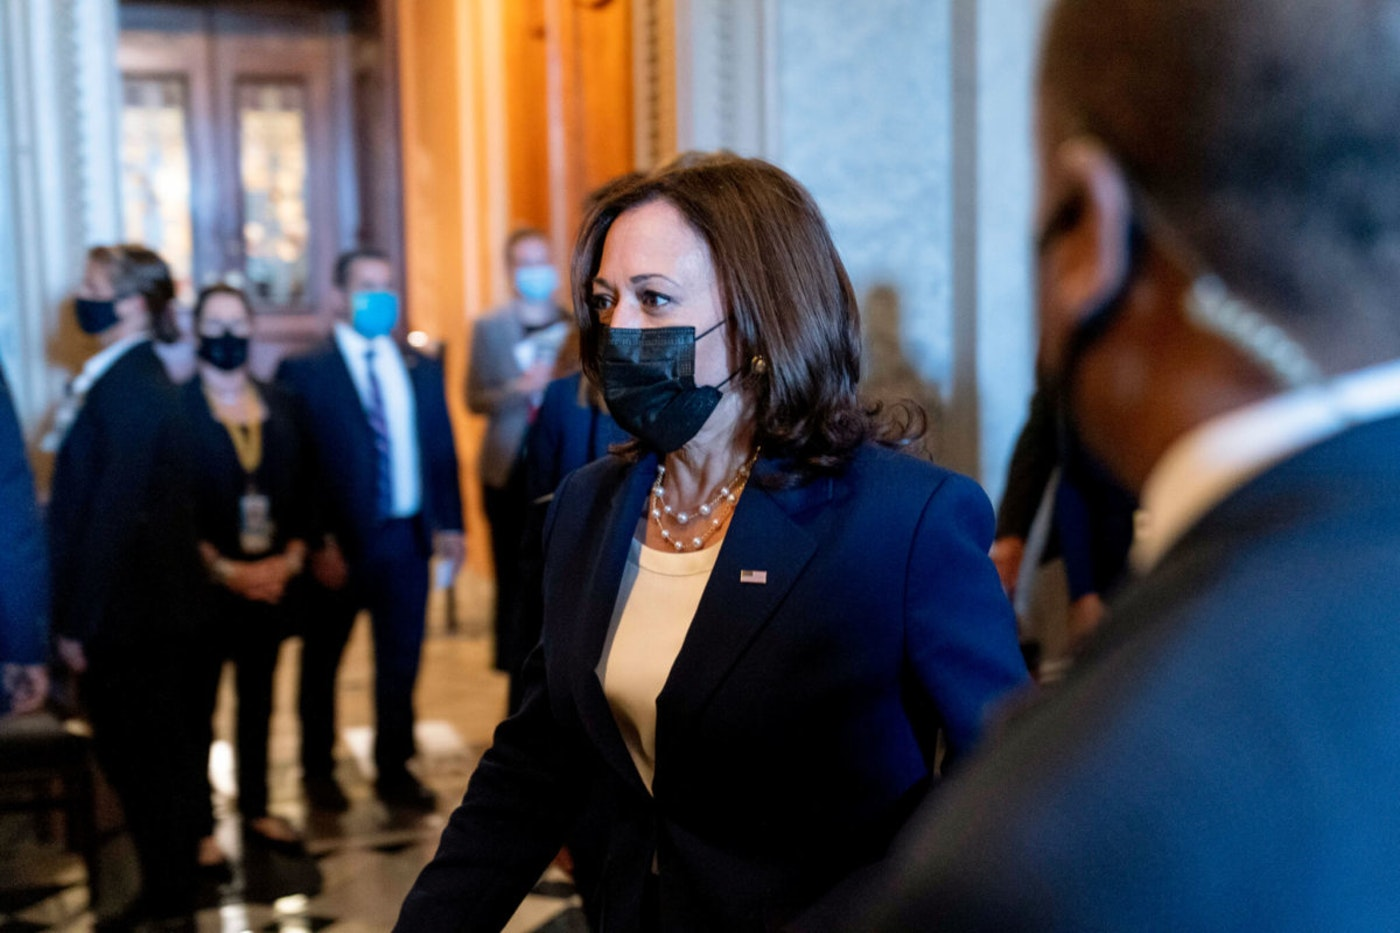 Vice President Kamala Harris walks off the Senate floor after voting on the $1 trillion bipartisan infrastructure package on Capitol Hill in Washington, Tuesday, Aug. 10, 2021. The Senate approved the bill, sending a cornerstone of the Biden agenda to the House. (AP Photo/Andrew Harnik)